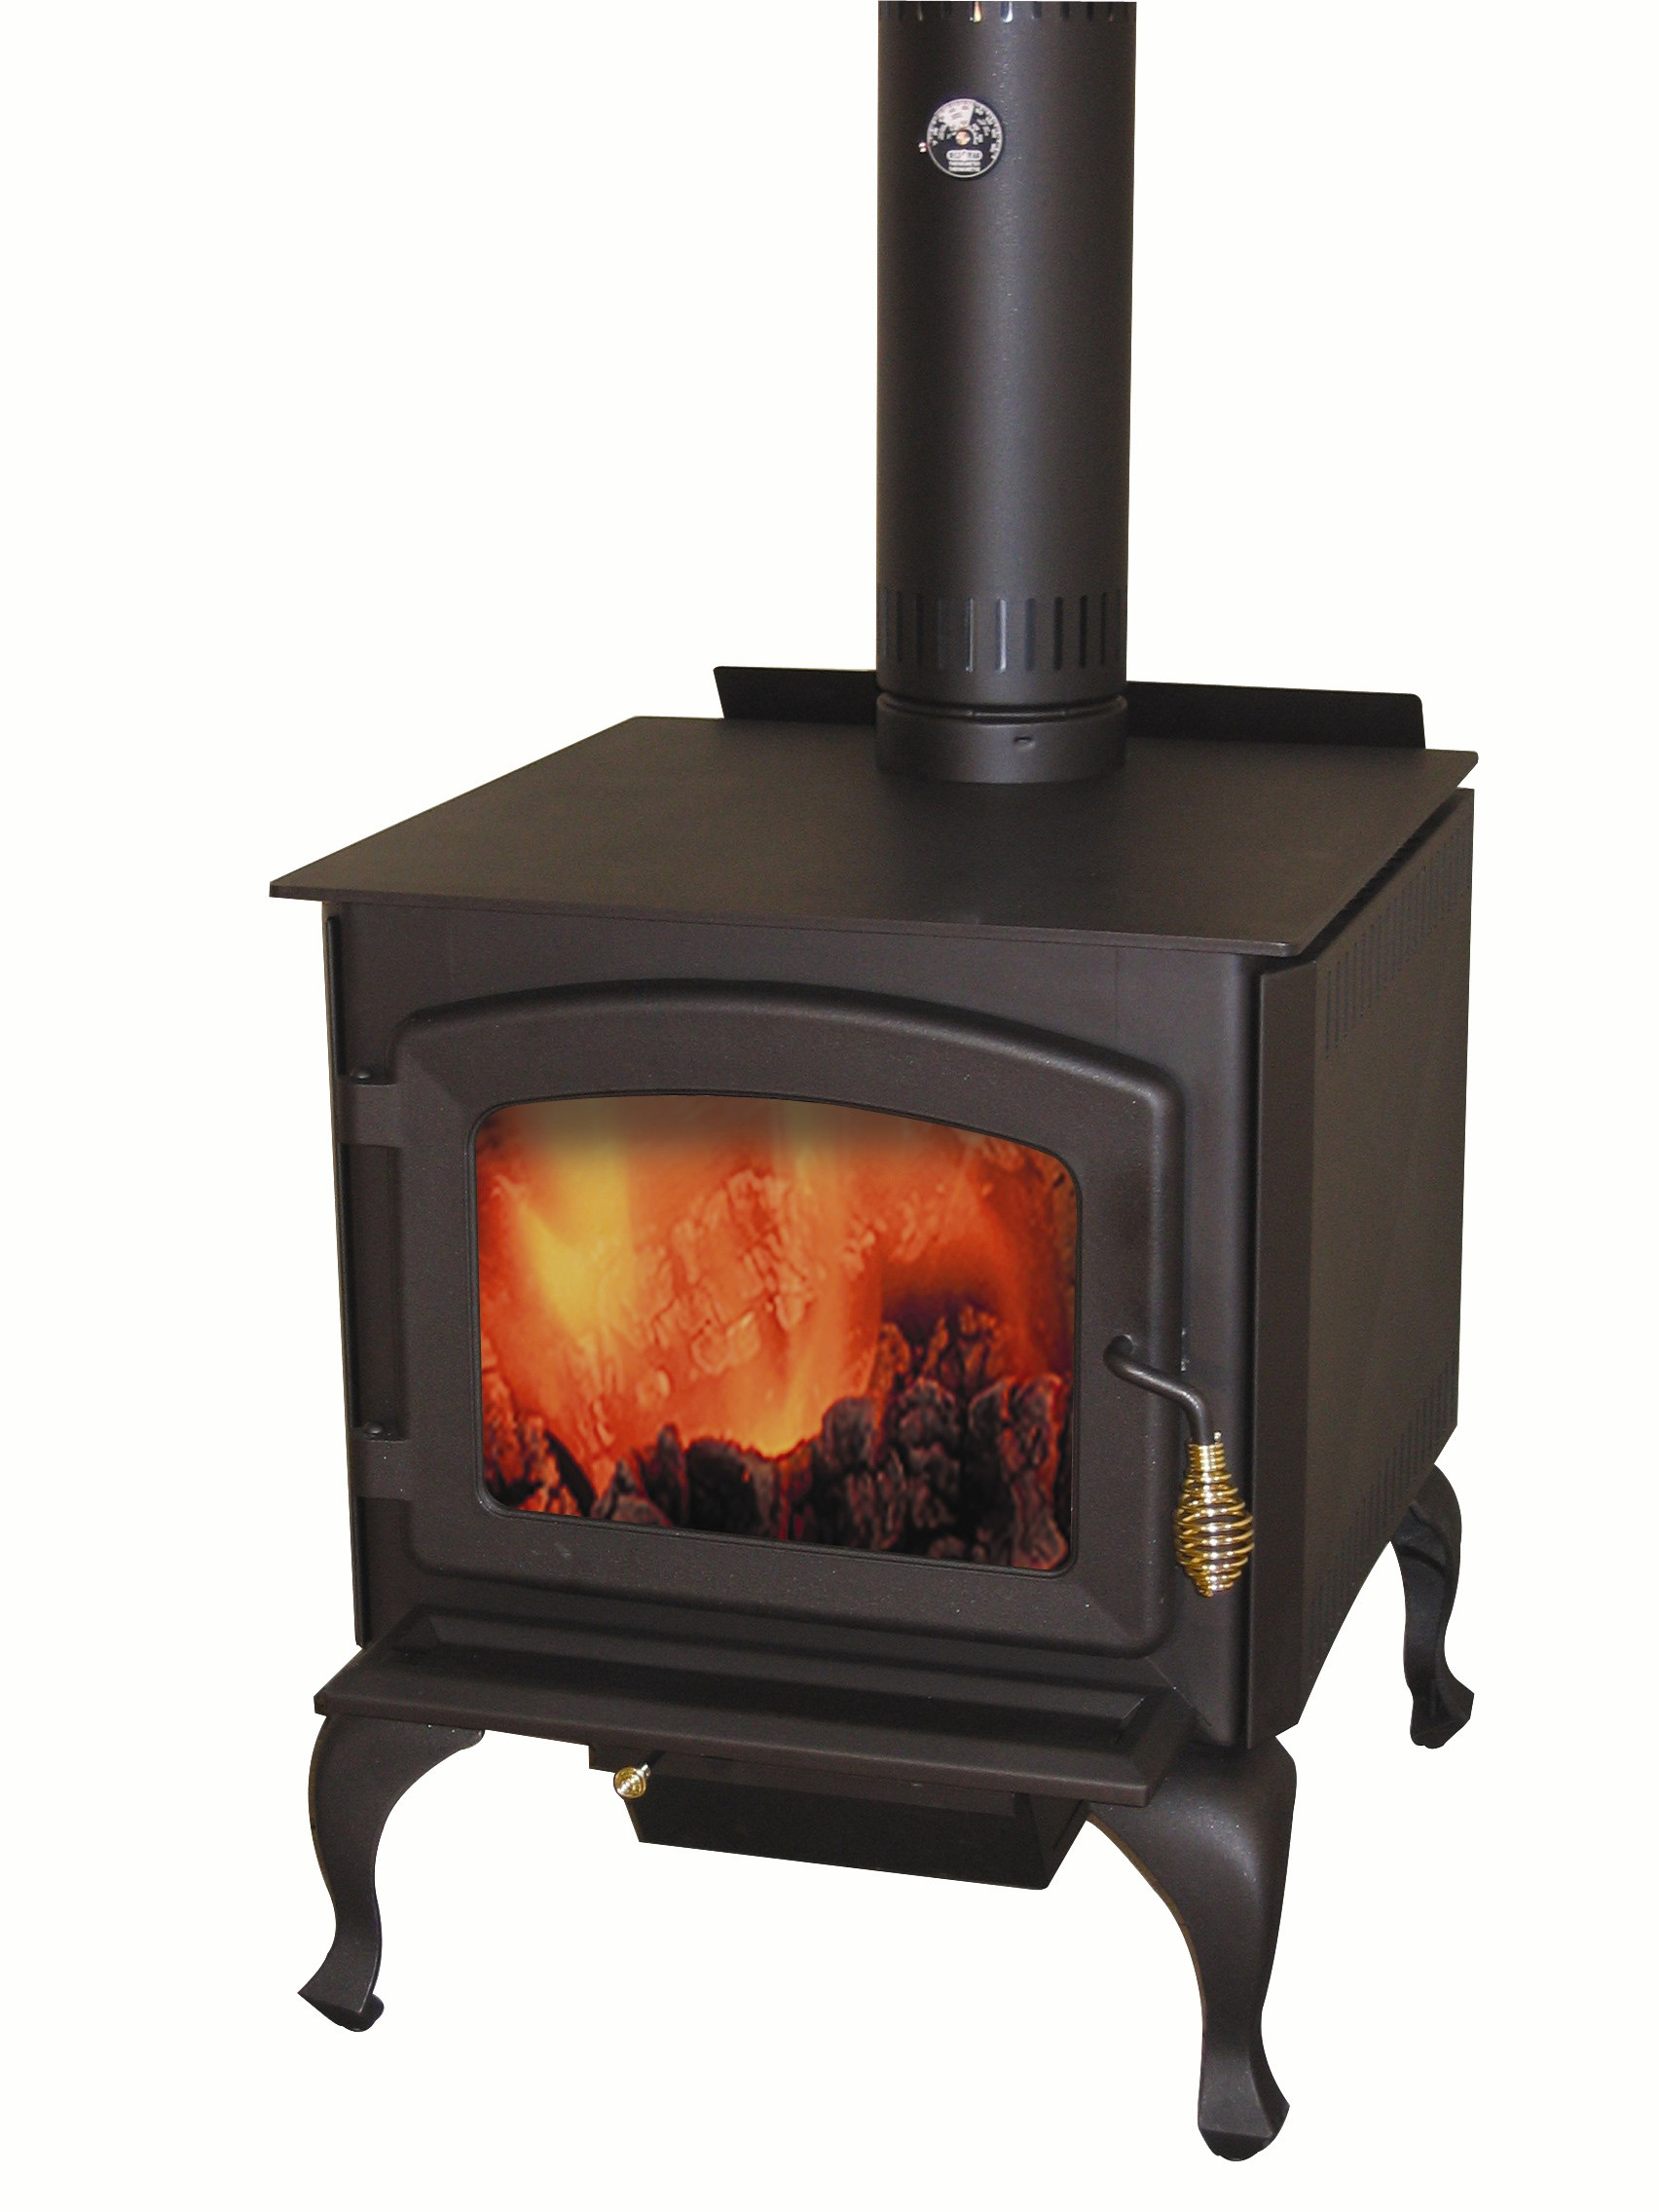 Wood Stove on Legs Model LEGEND with Blower Included